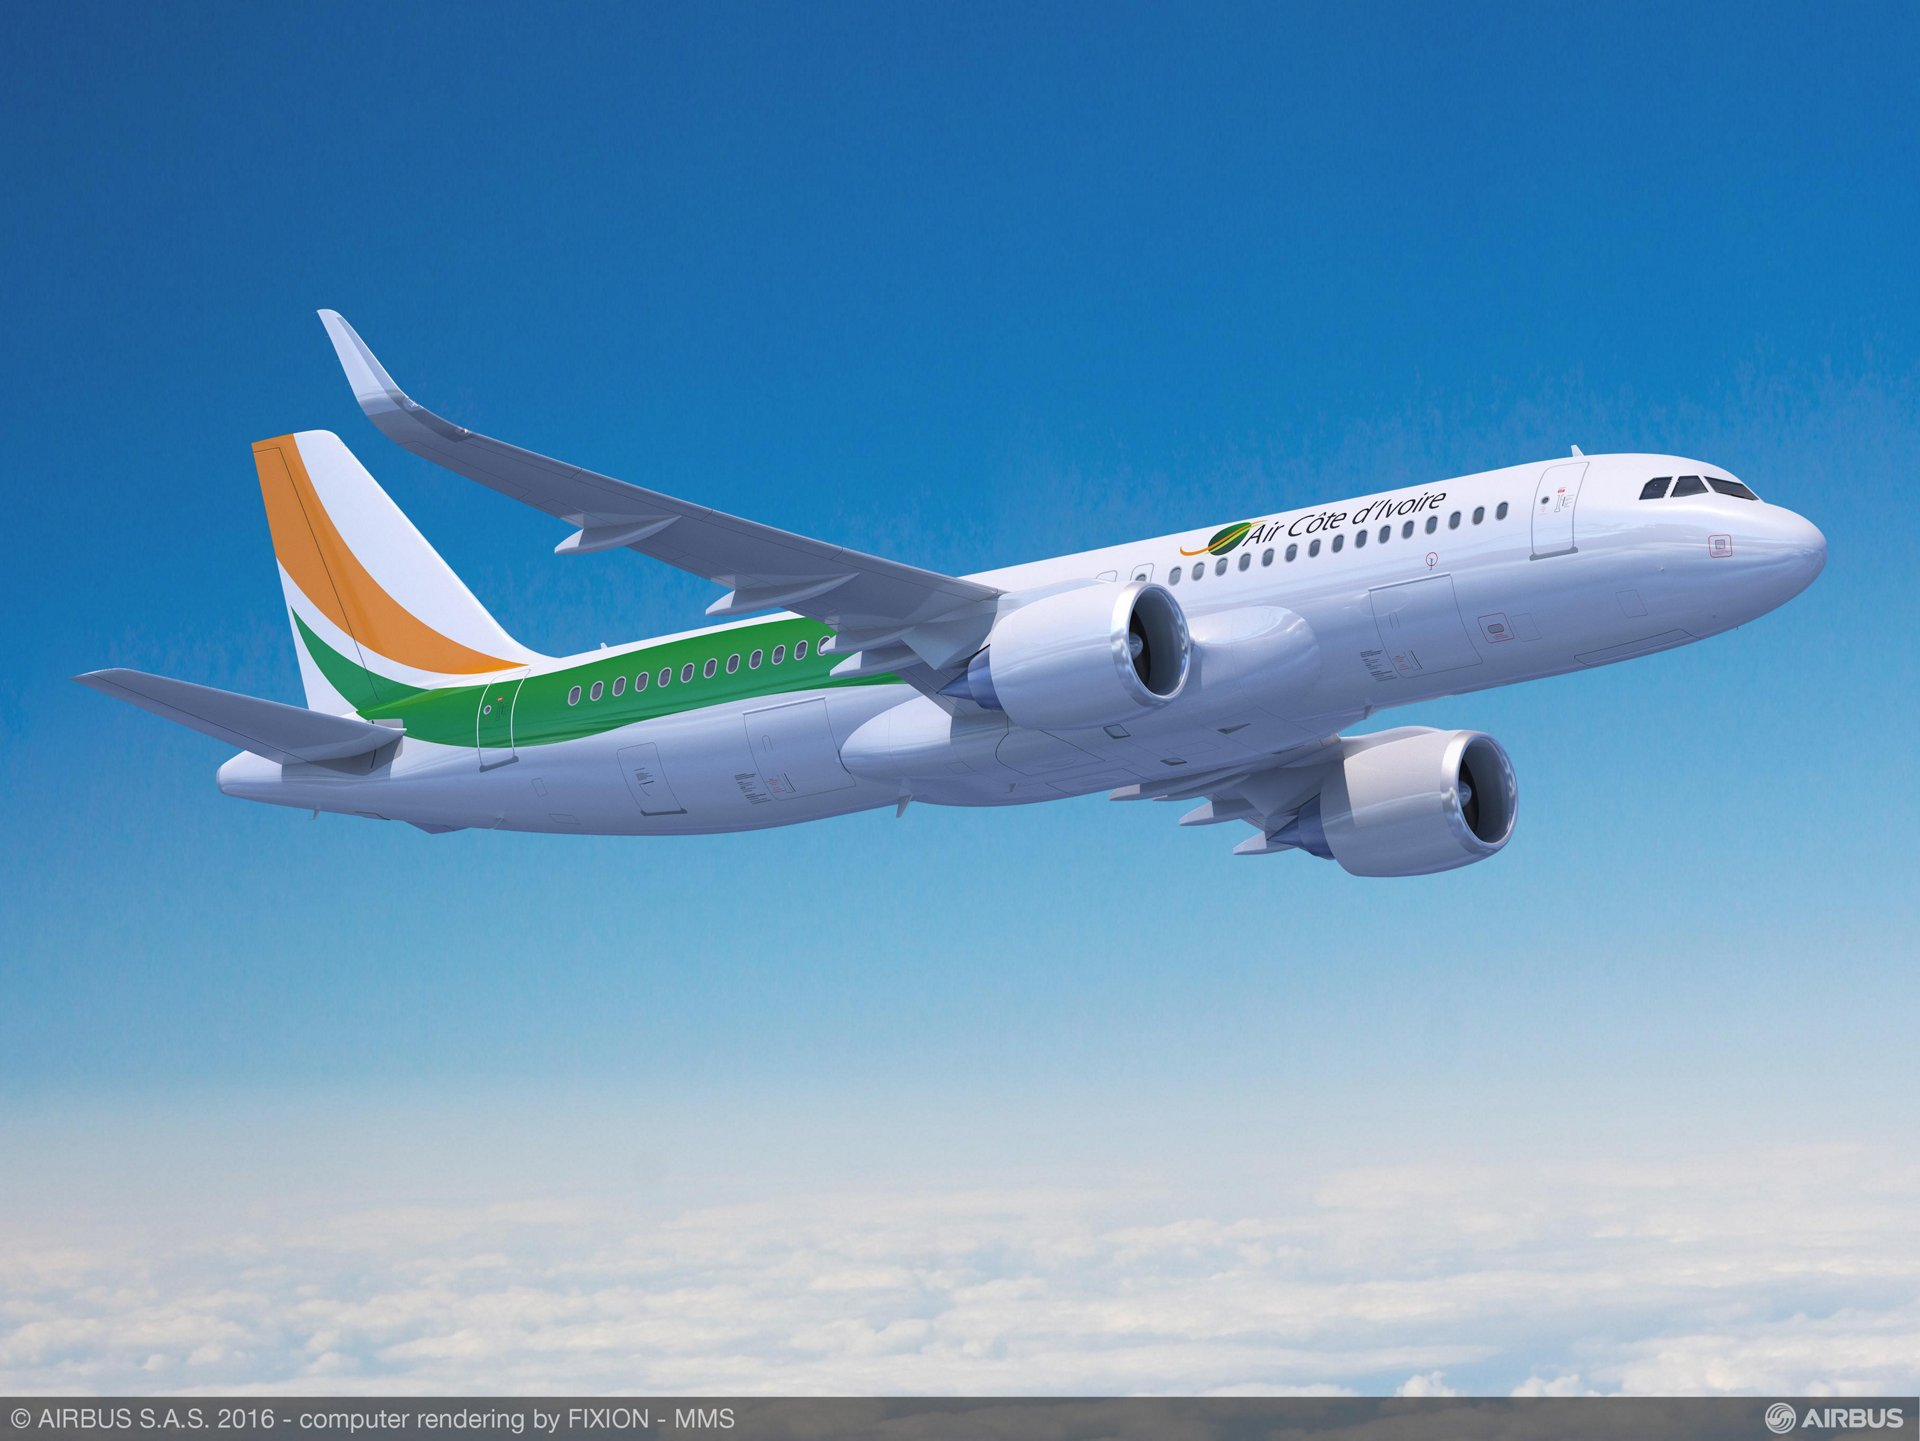 "General Abdoulaye Coulibaly, Chairman of the Board for Air Côte d'Ivoire: ""This additional A320neo will allow Air Côte d'Ivoire to truly differentiate its product by offering a higher level of comfort to its customers with new aircraft"""